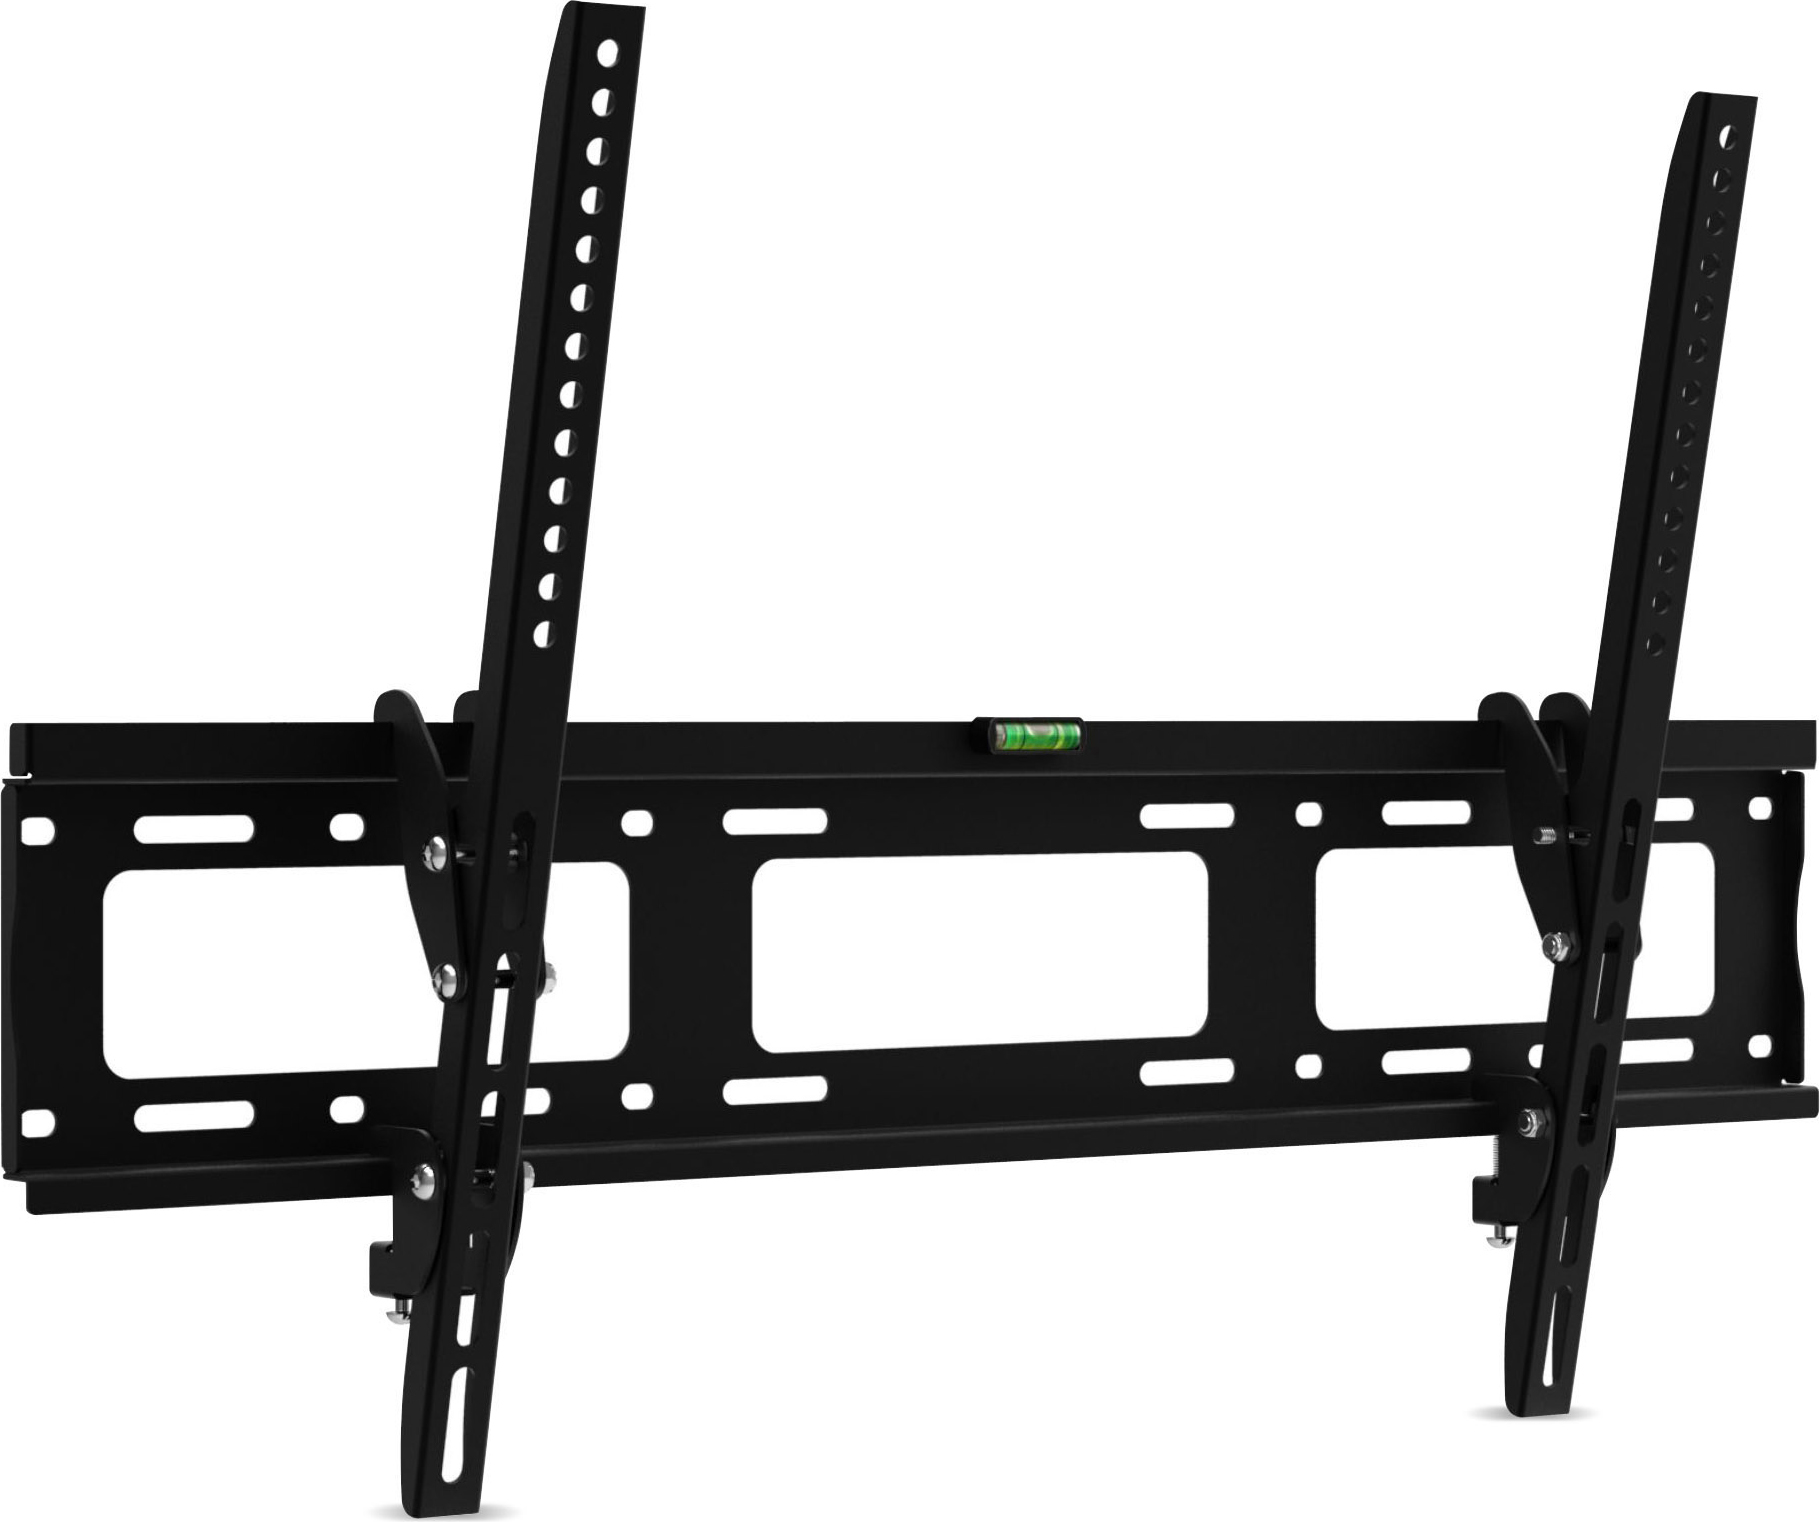 How To Make A Tv Wall Mount Ematic Emw6201 Tilting Tv Wall Mount For 30 Quot 79 Displays